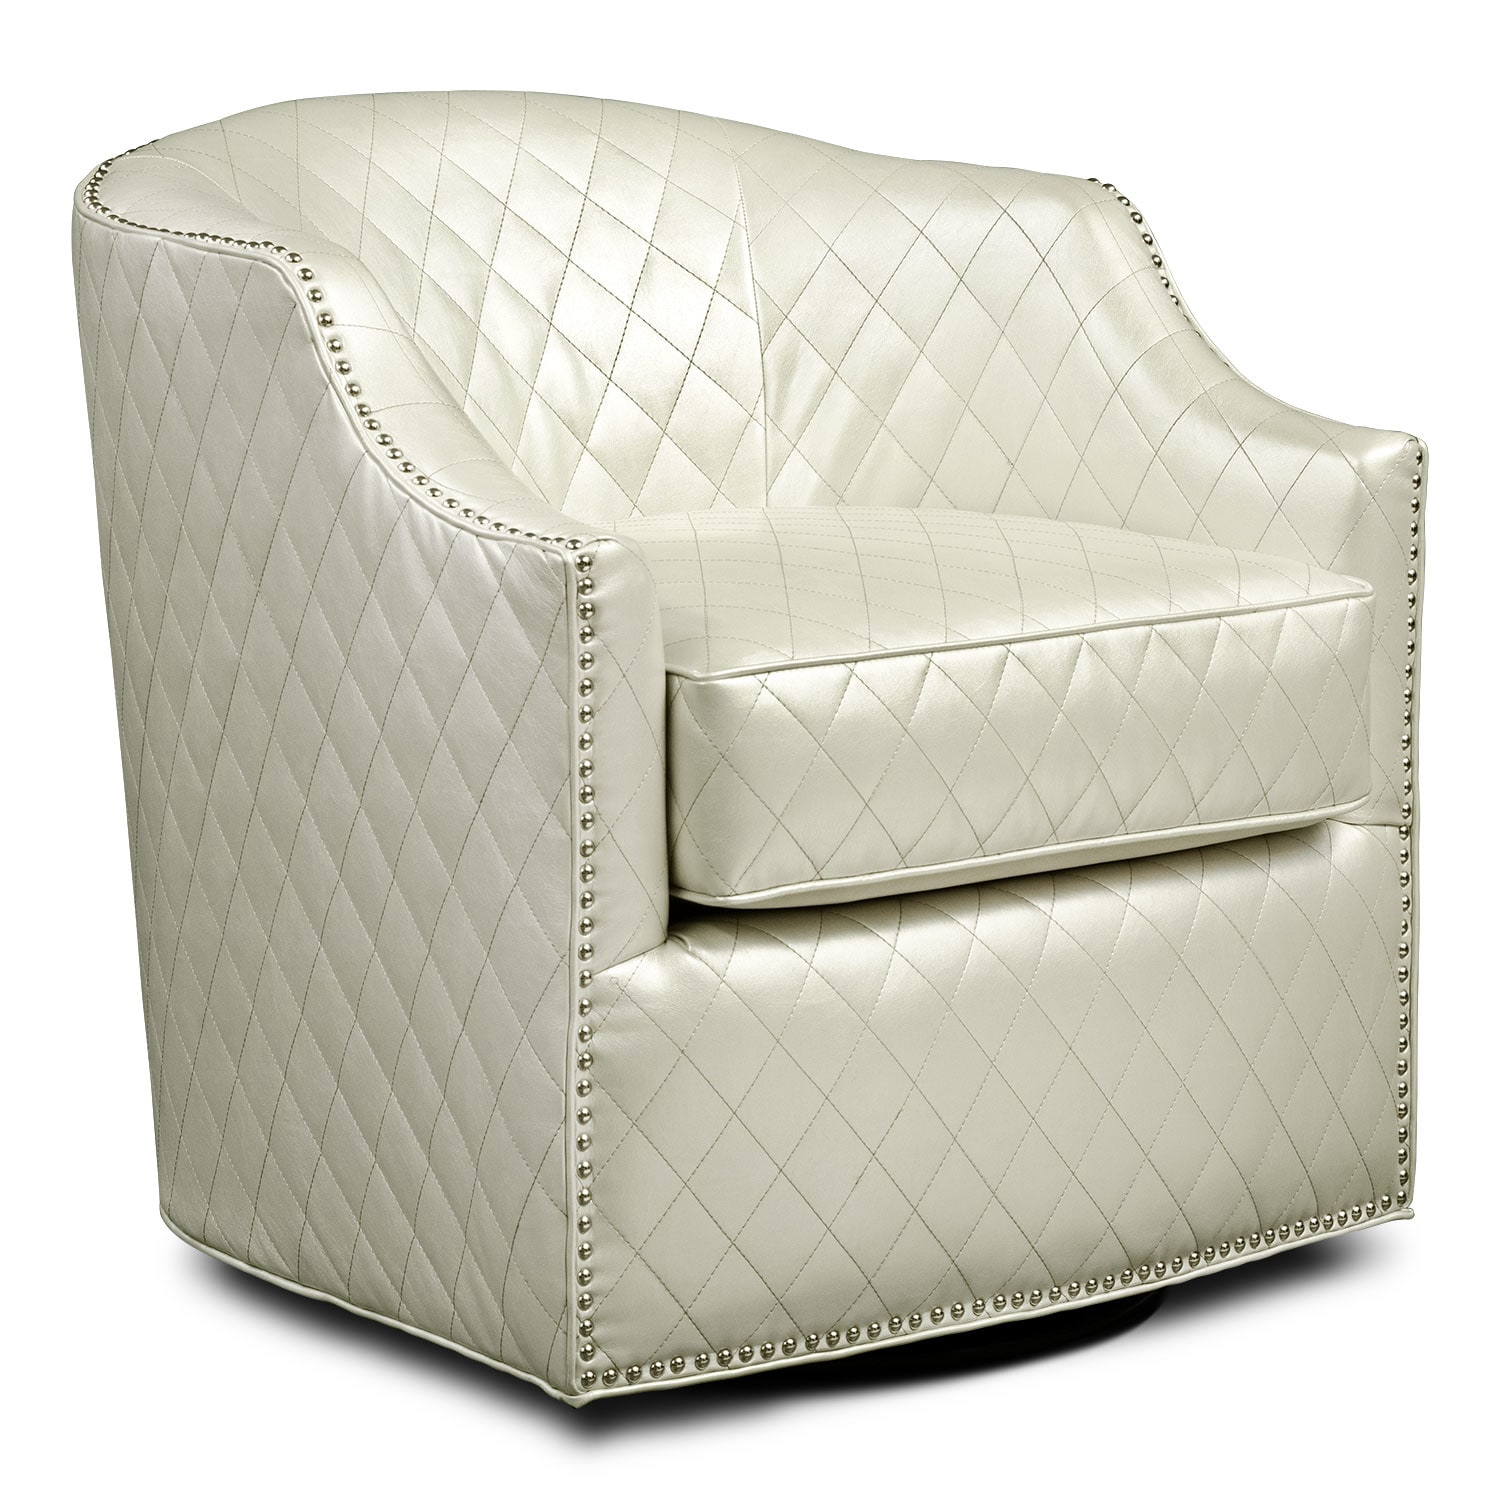 Value City Furniture We Make Ping Easy